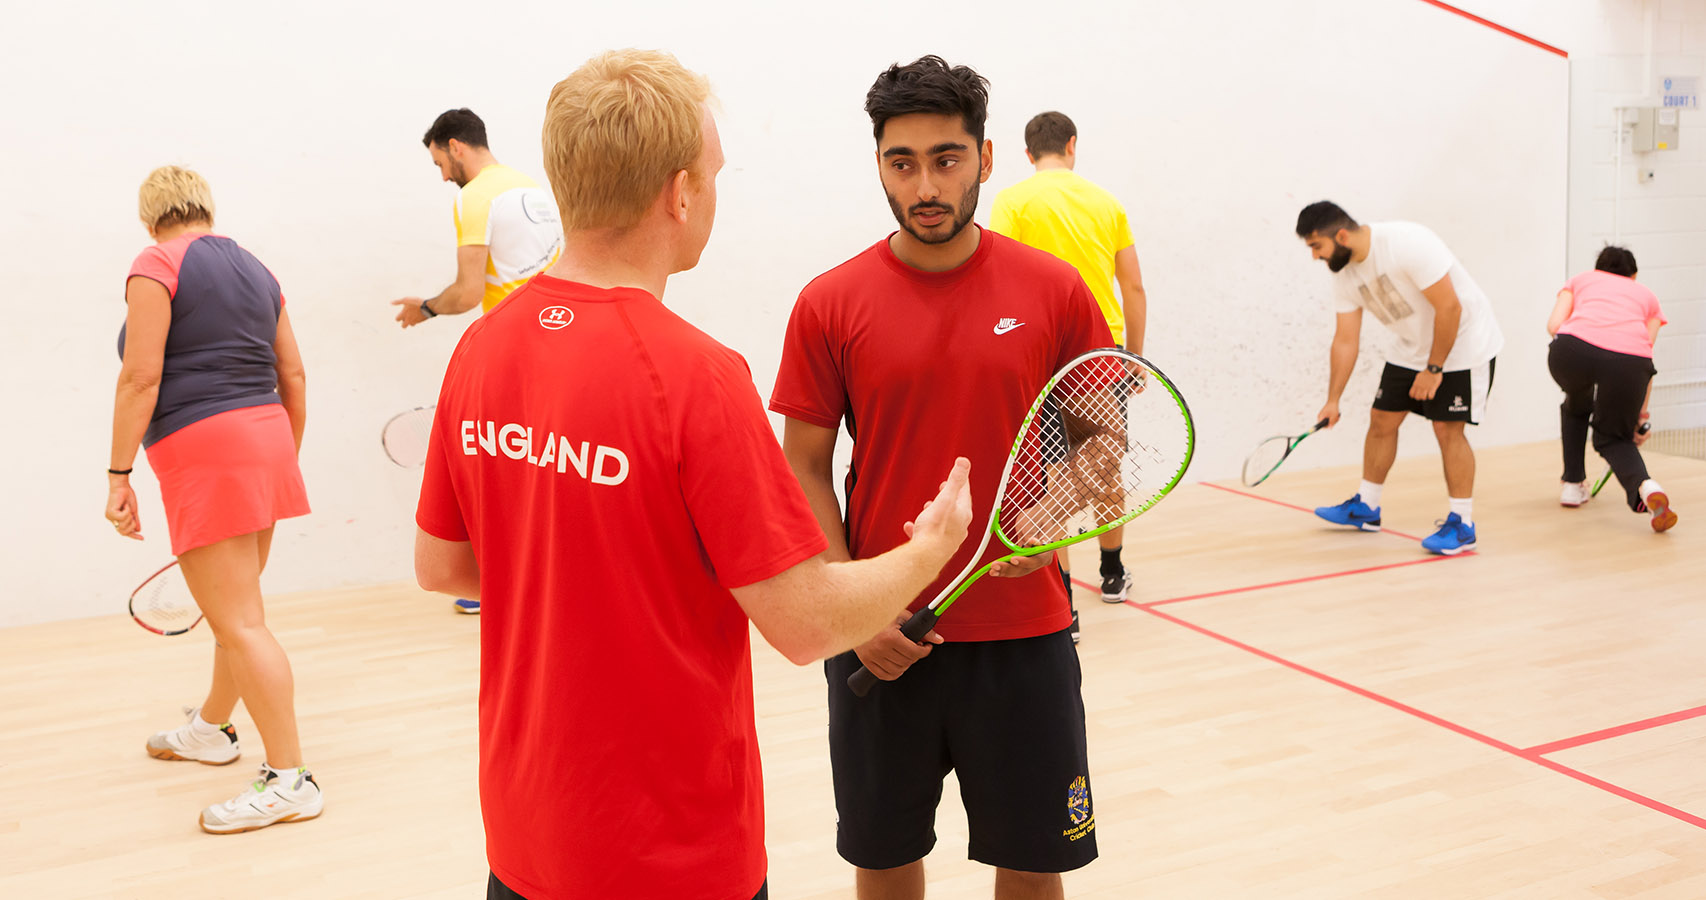 England coach tutoring a squash course